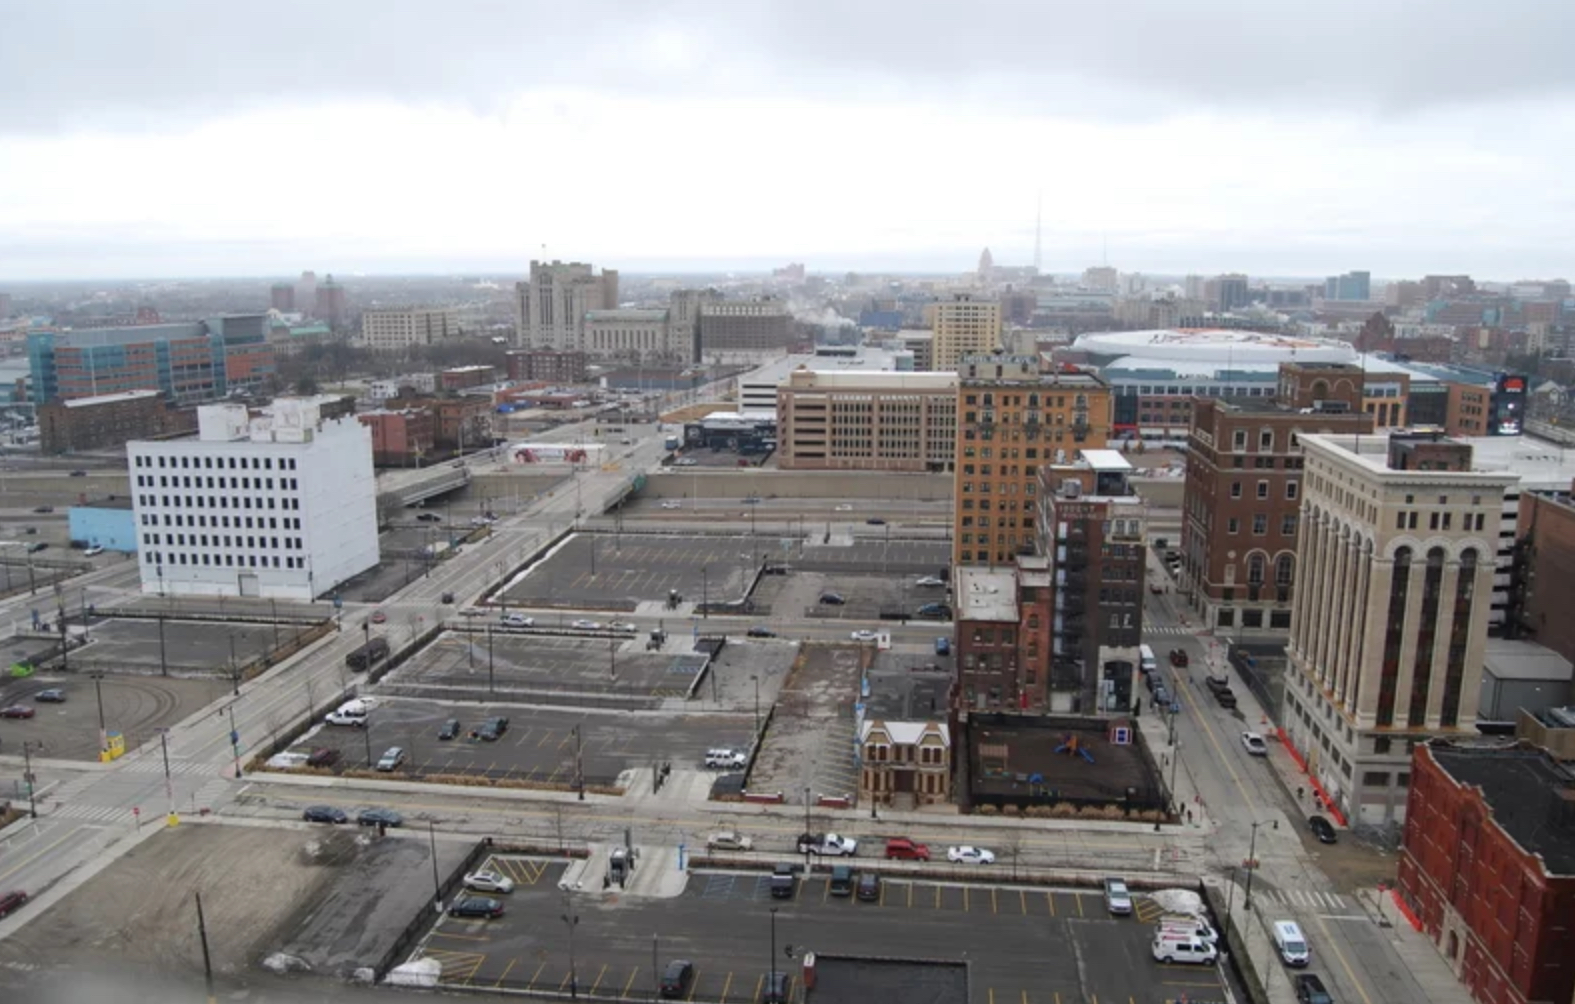 The current view of the planned District Detroit area